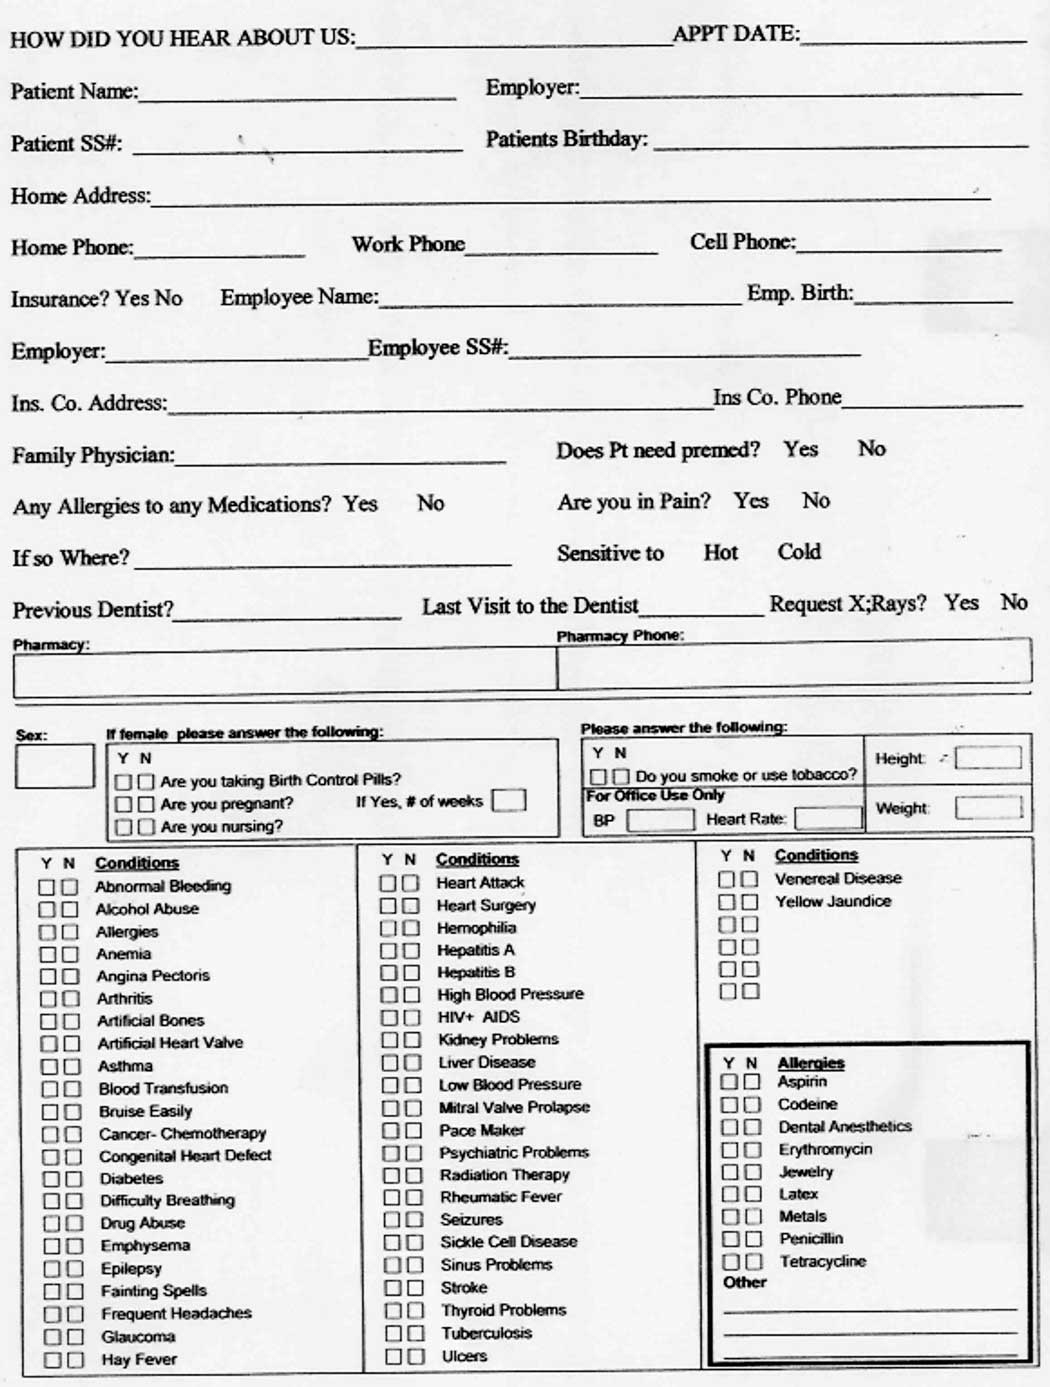 016 Patient Medical History Form Template New Printable Office Forms - Free Printable Personal Medical History Forms